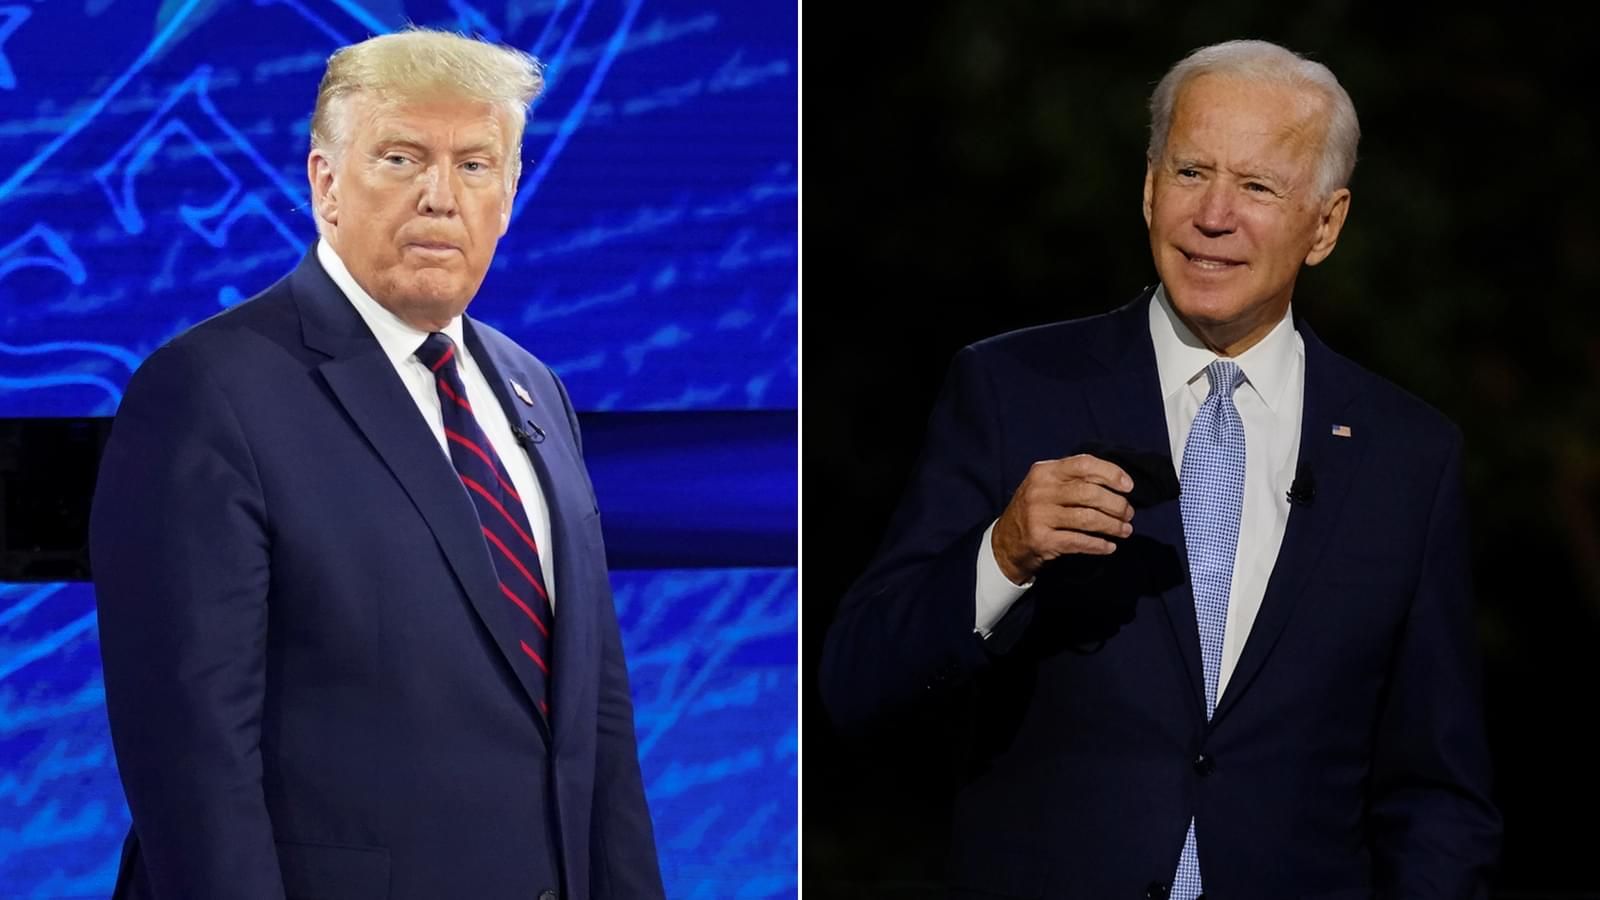 WBAP Morning News: Why is China Afraid of a Biden Win?